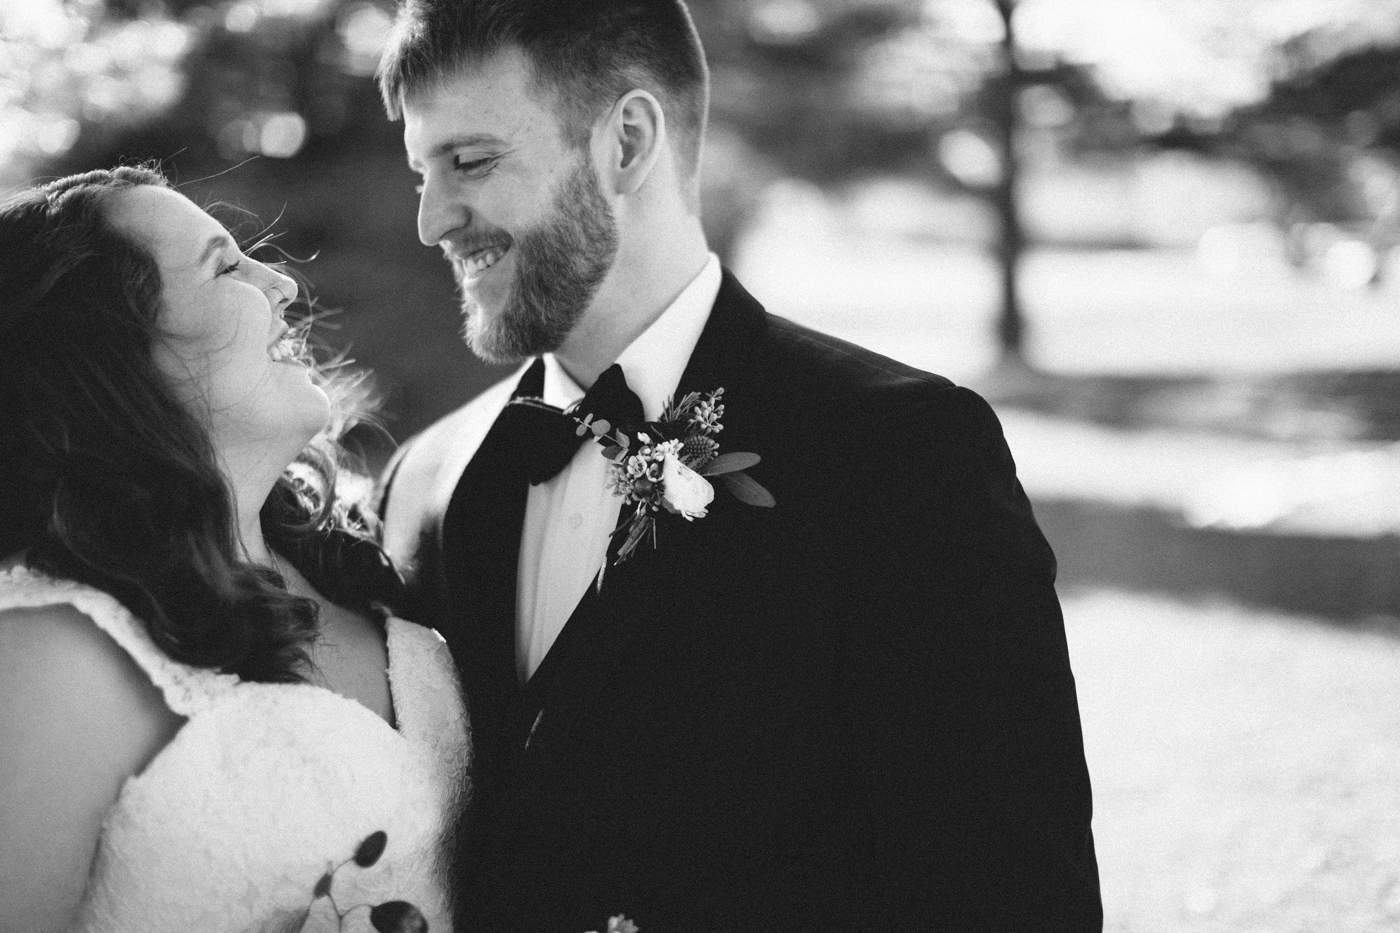 Matt&Amanda_SiouxFalls_DesMoines_Wedding_Photographer_02.jpg